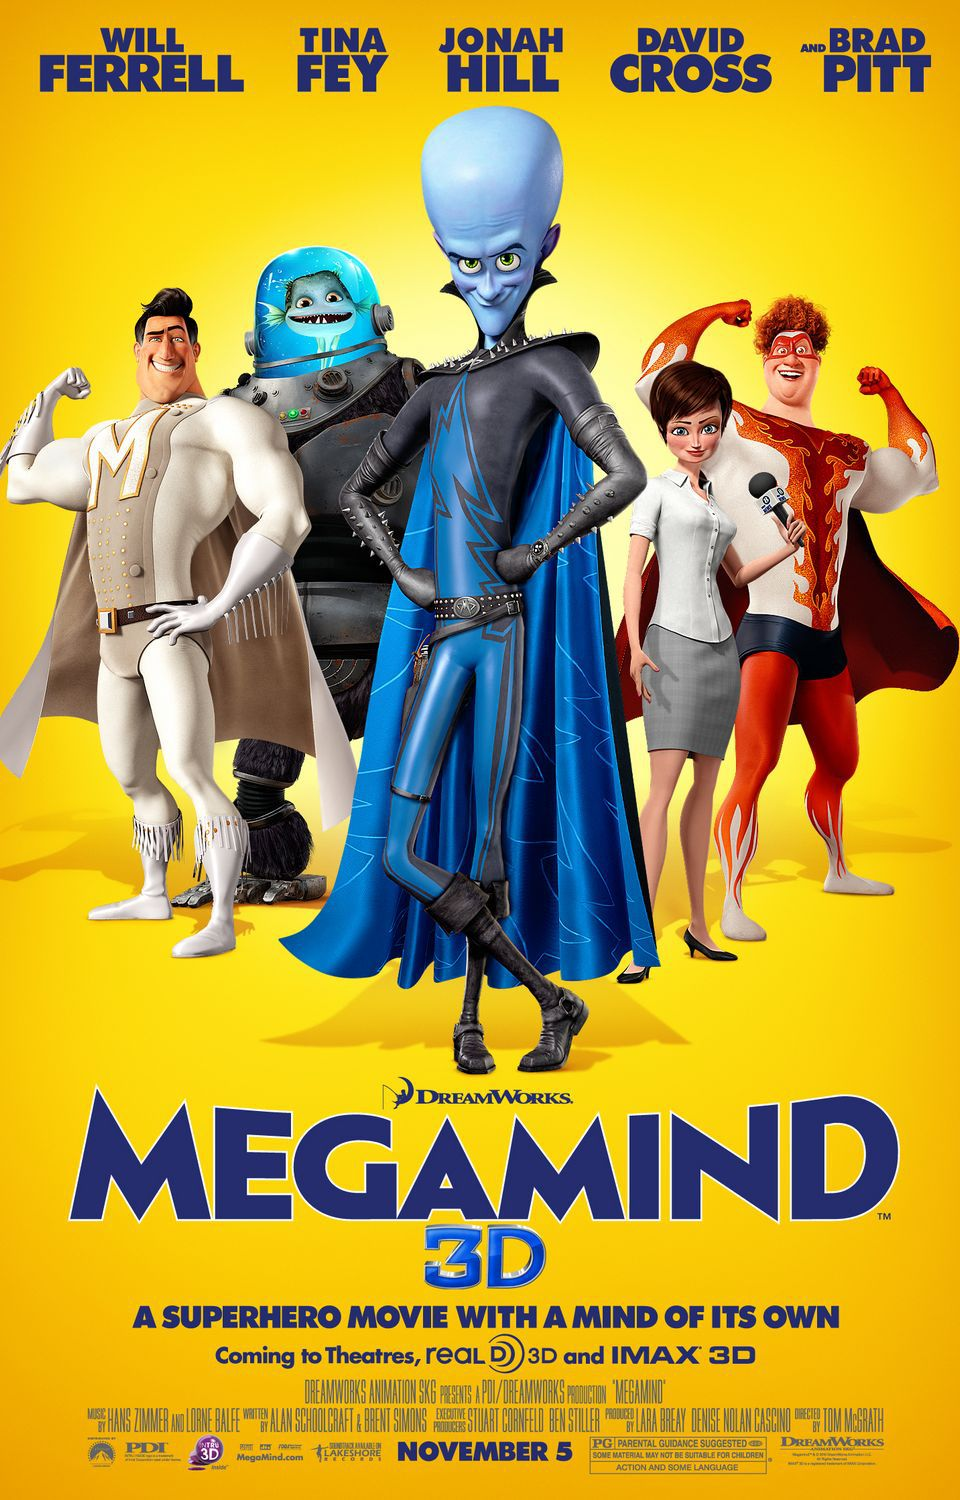 Megamind - posters collection